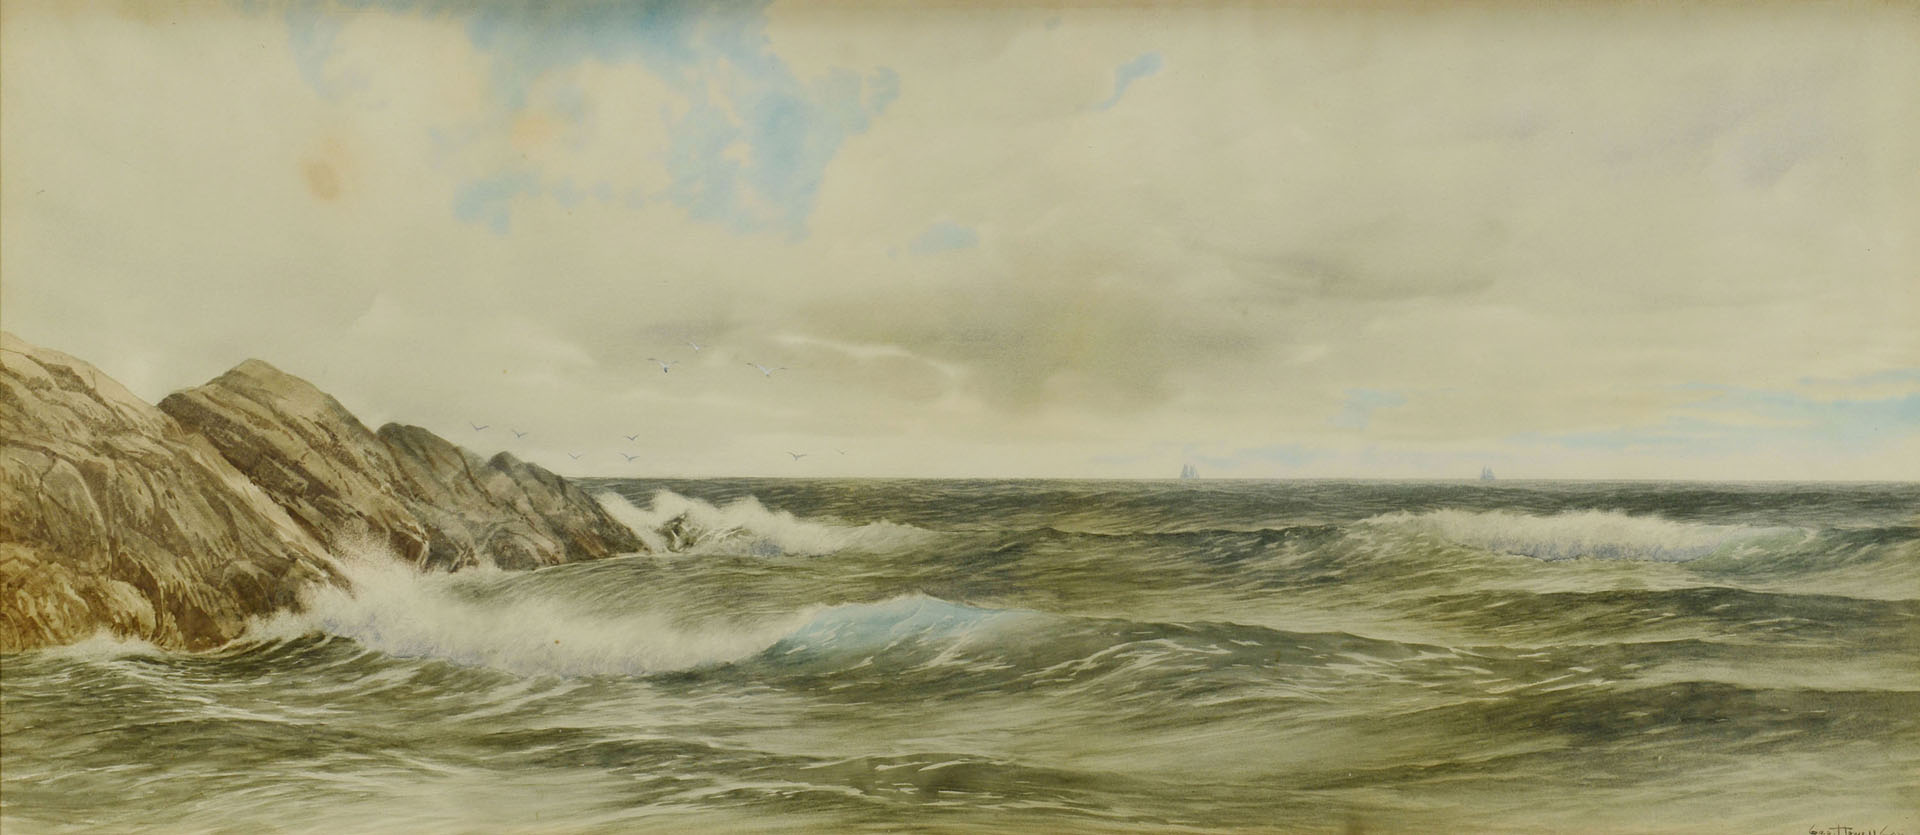 Lot 197: George Howell Gay watercolor seascape